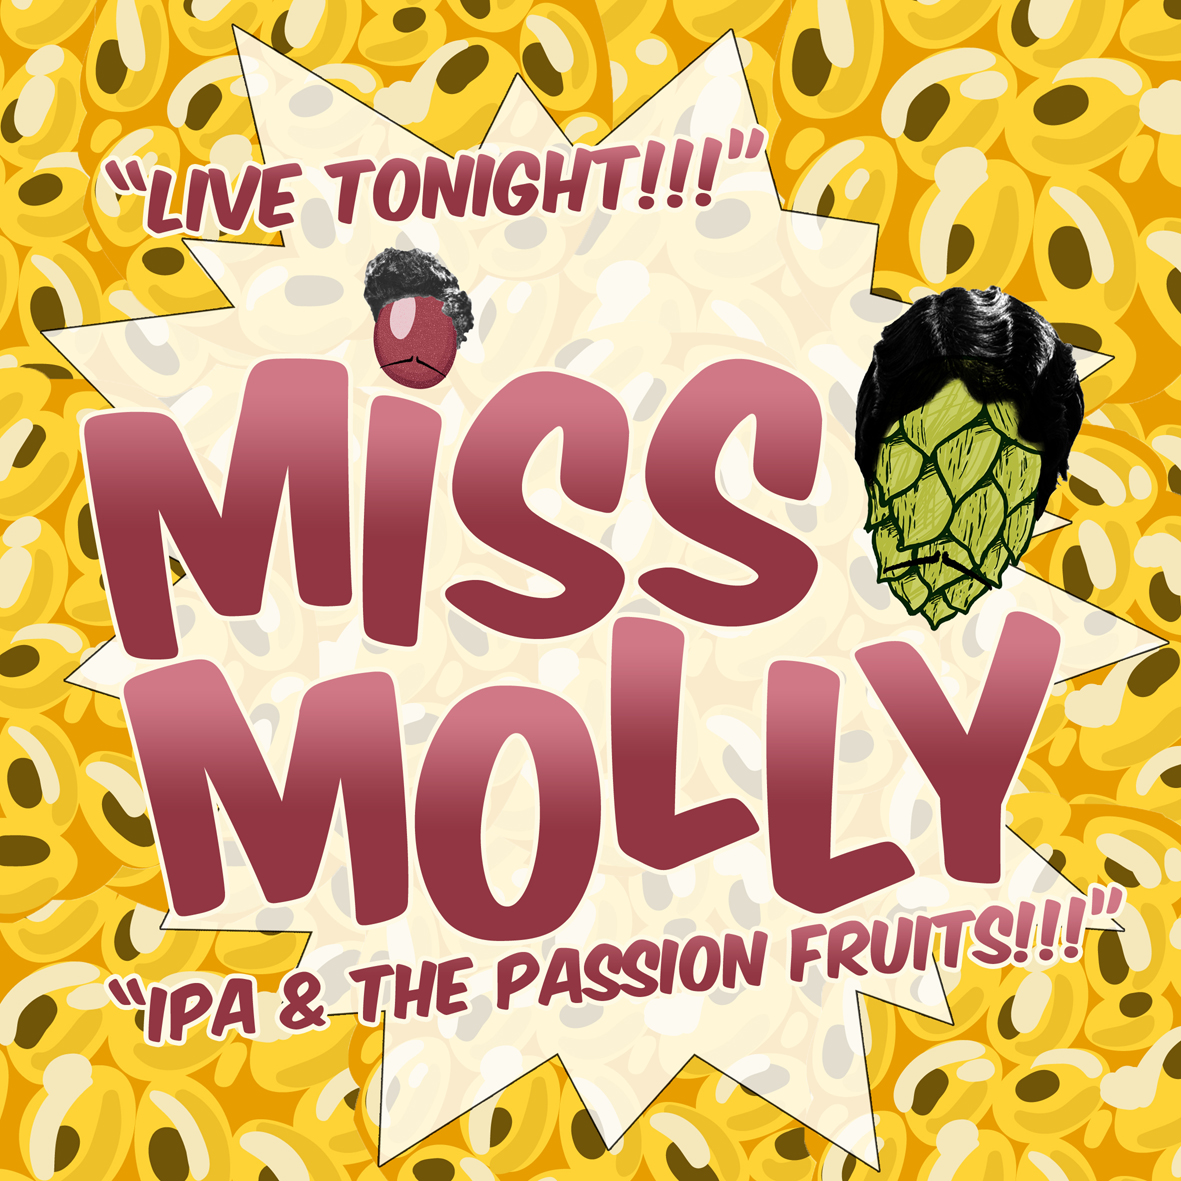 MISS MOLLY FRUIT IPA